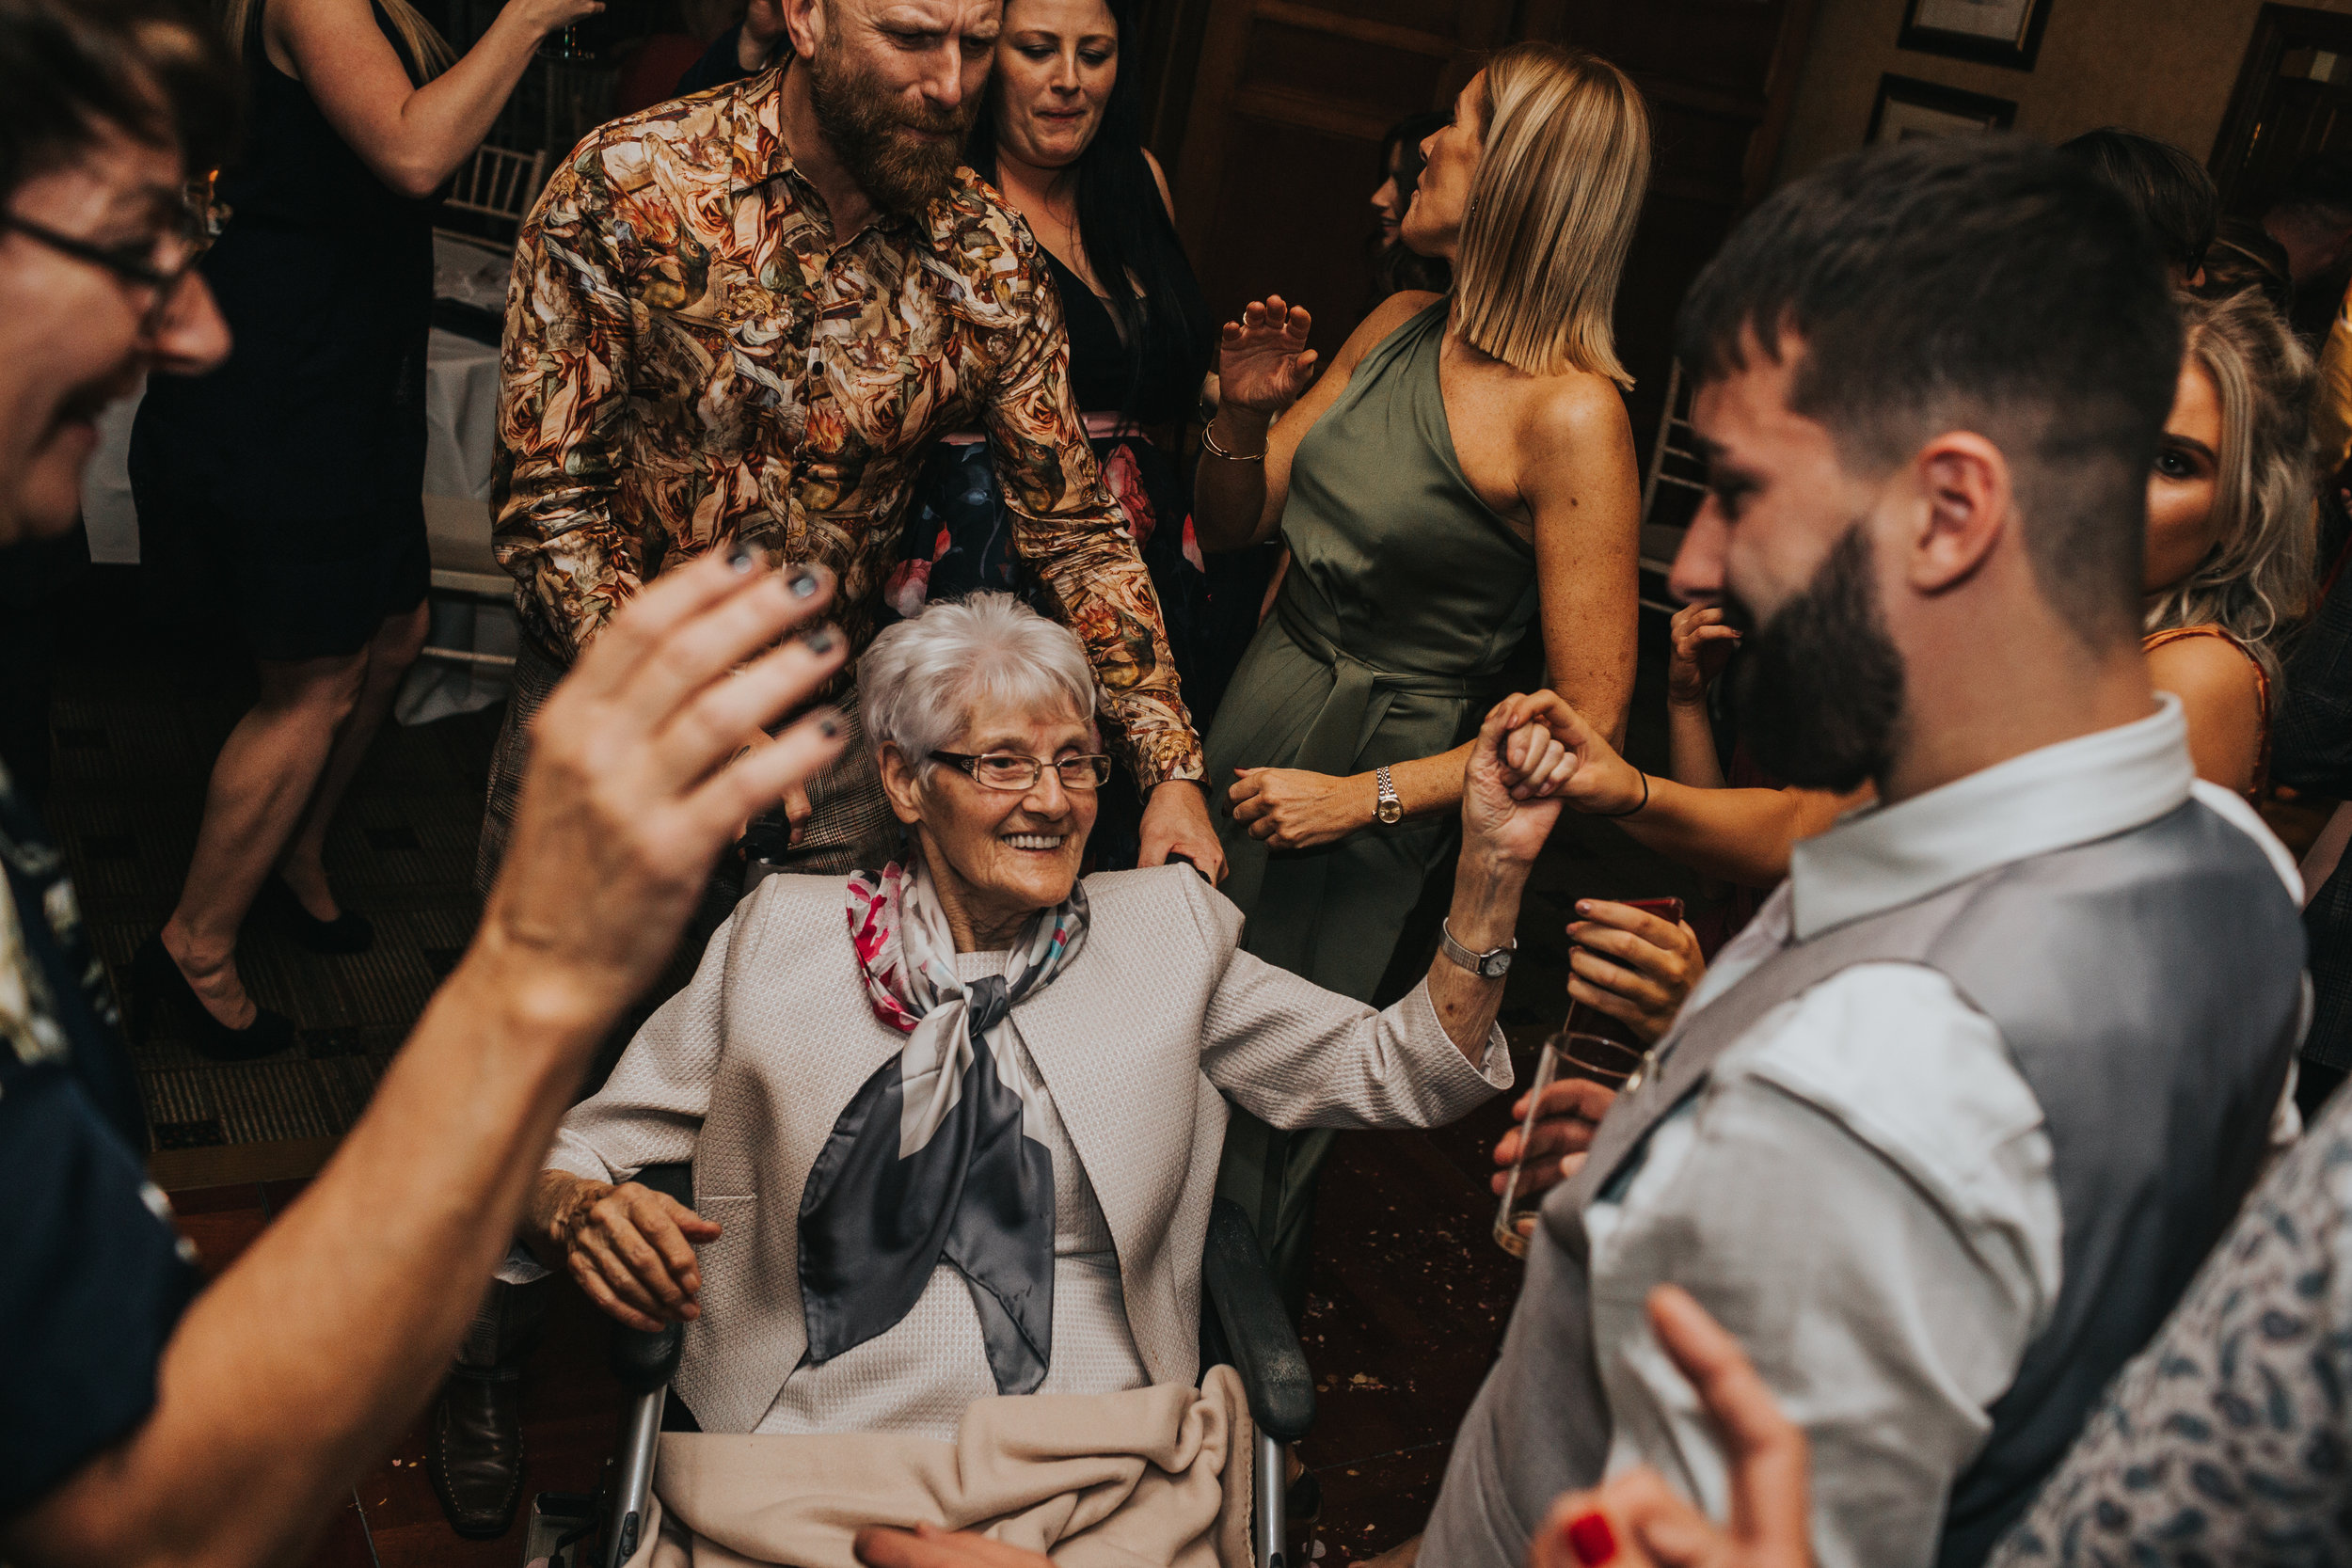 Grandma dances in her wheelchair surrounded by friends and family.